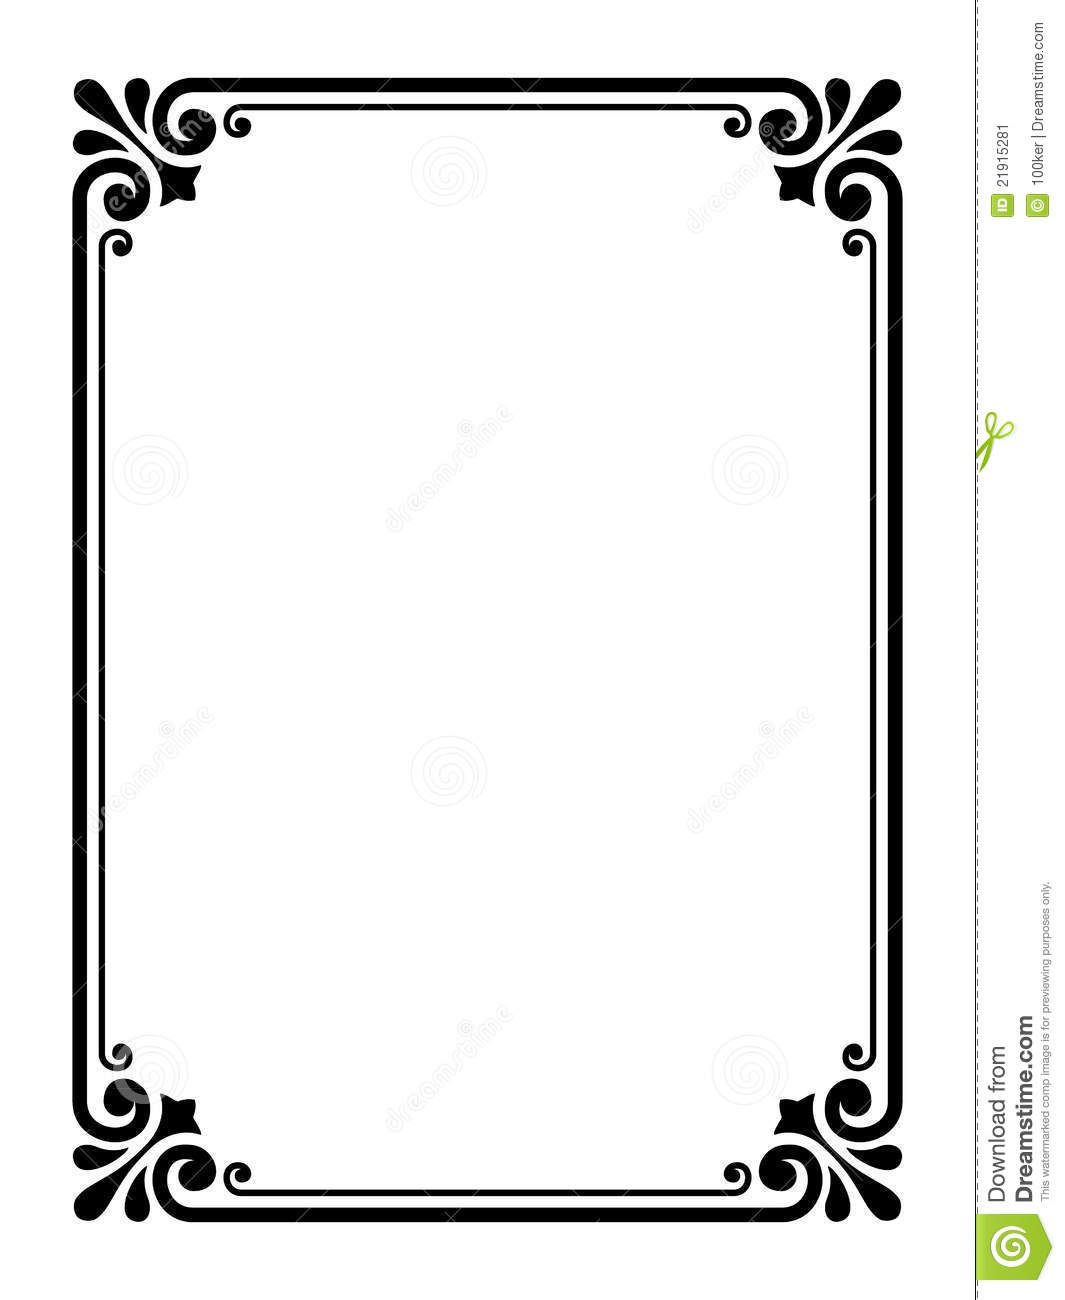 Black And White Frame Clipart   Free download best Black And White ...